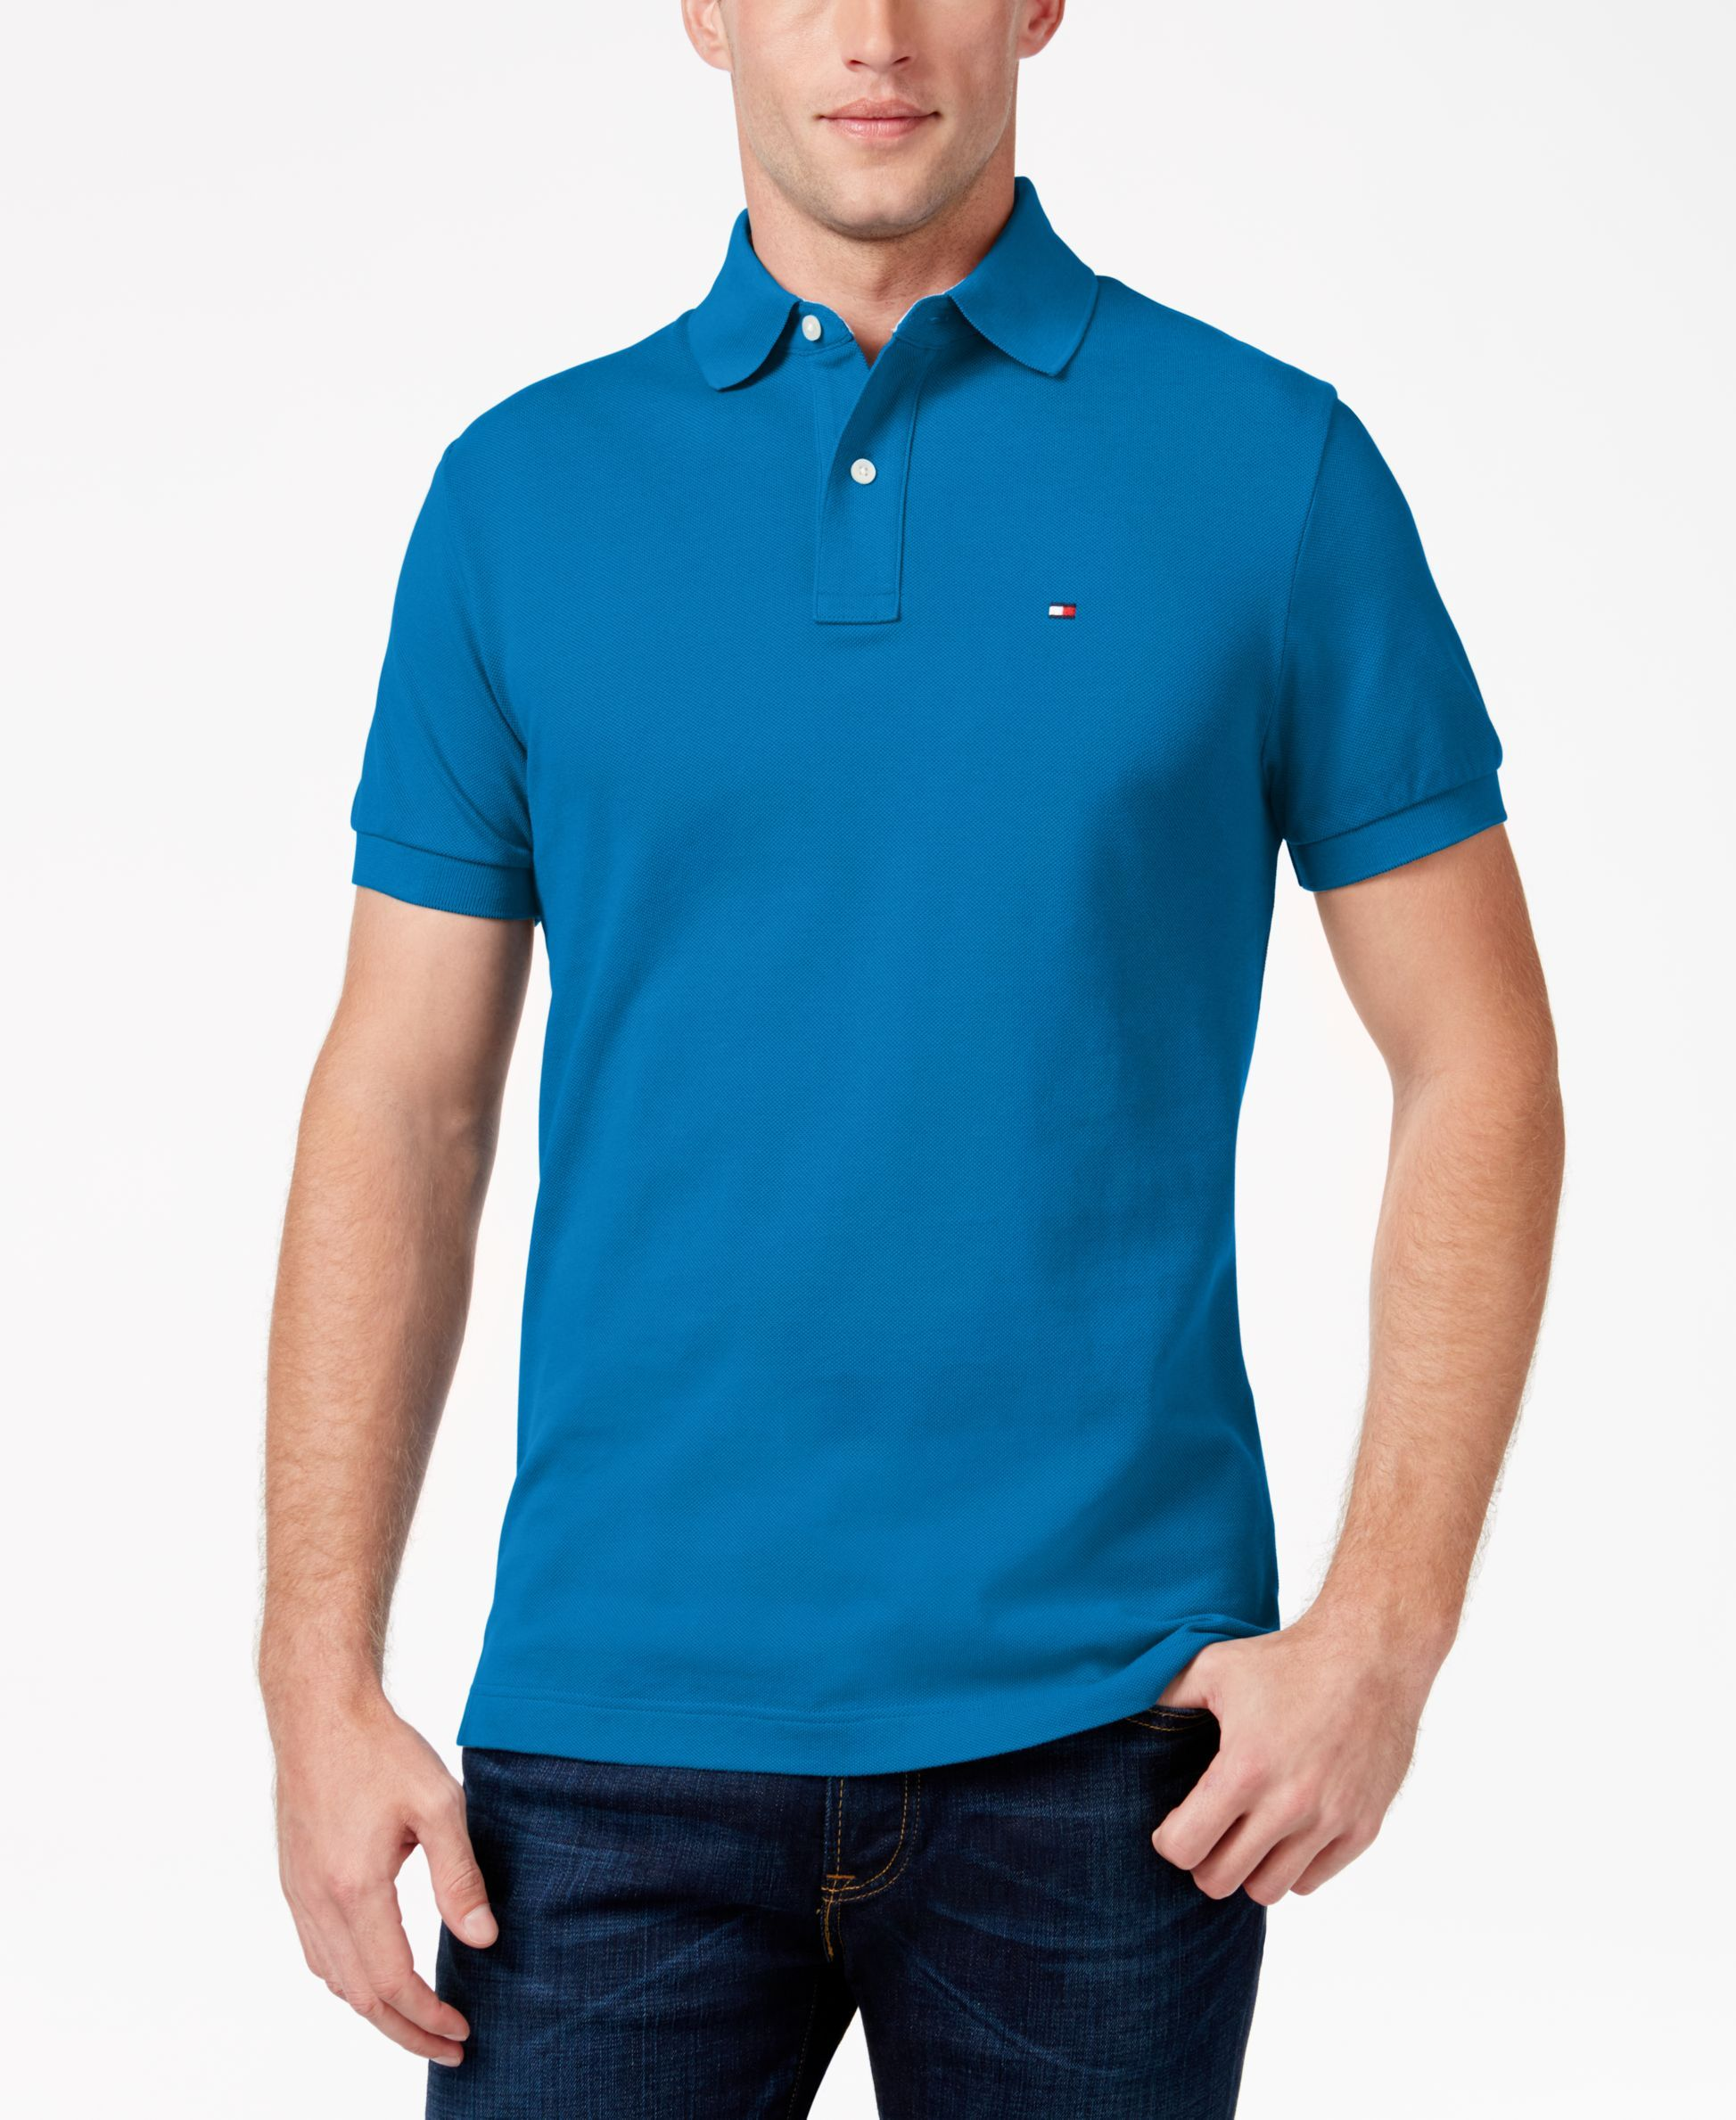 63c3475d Men's Custom-Fit Ivy Polo | Products | Polo